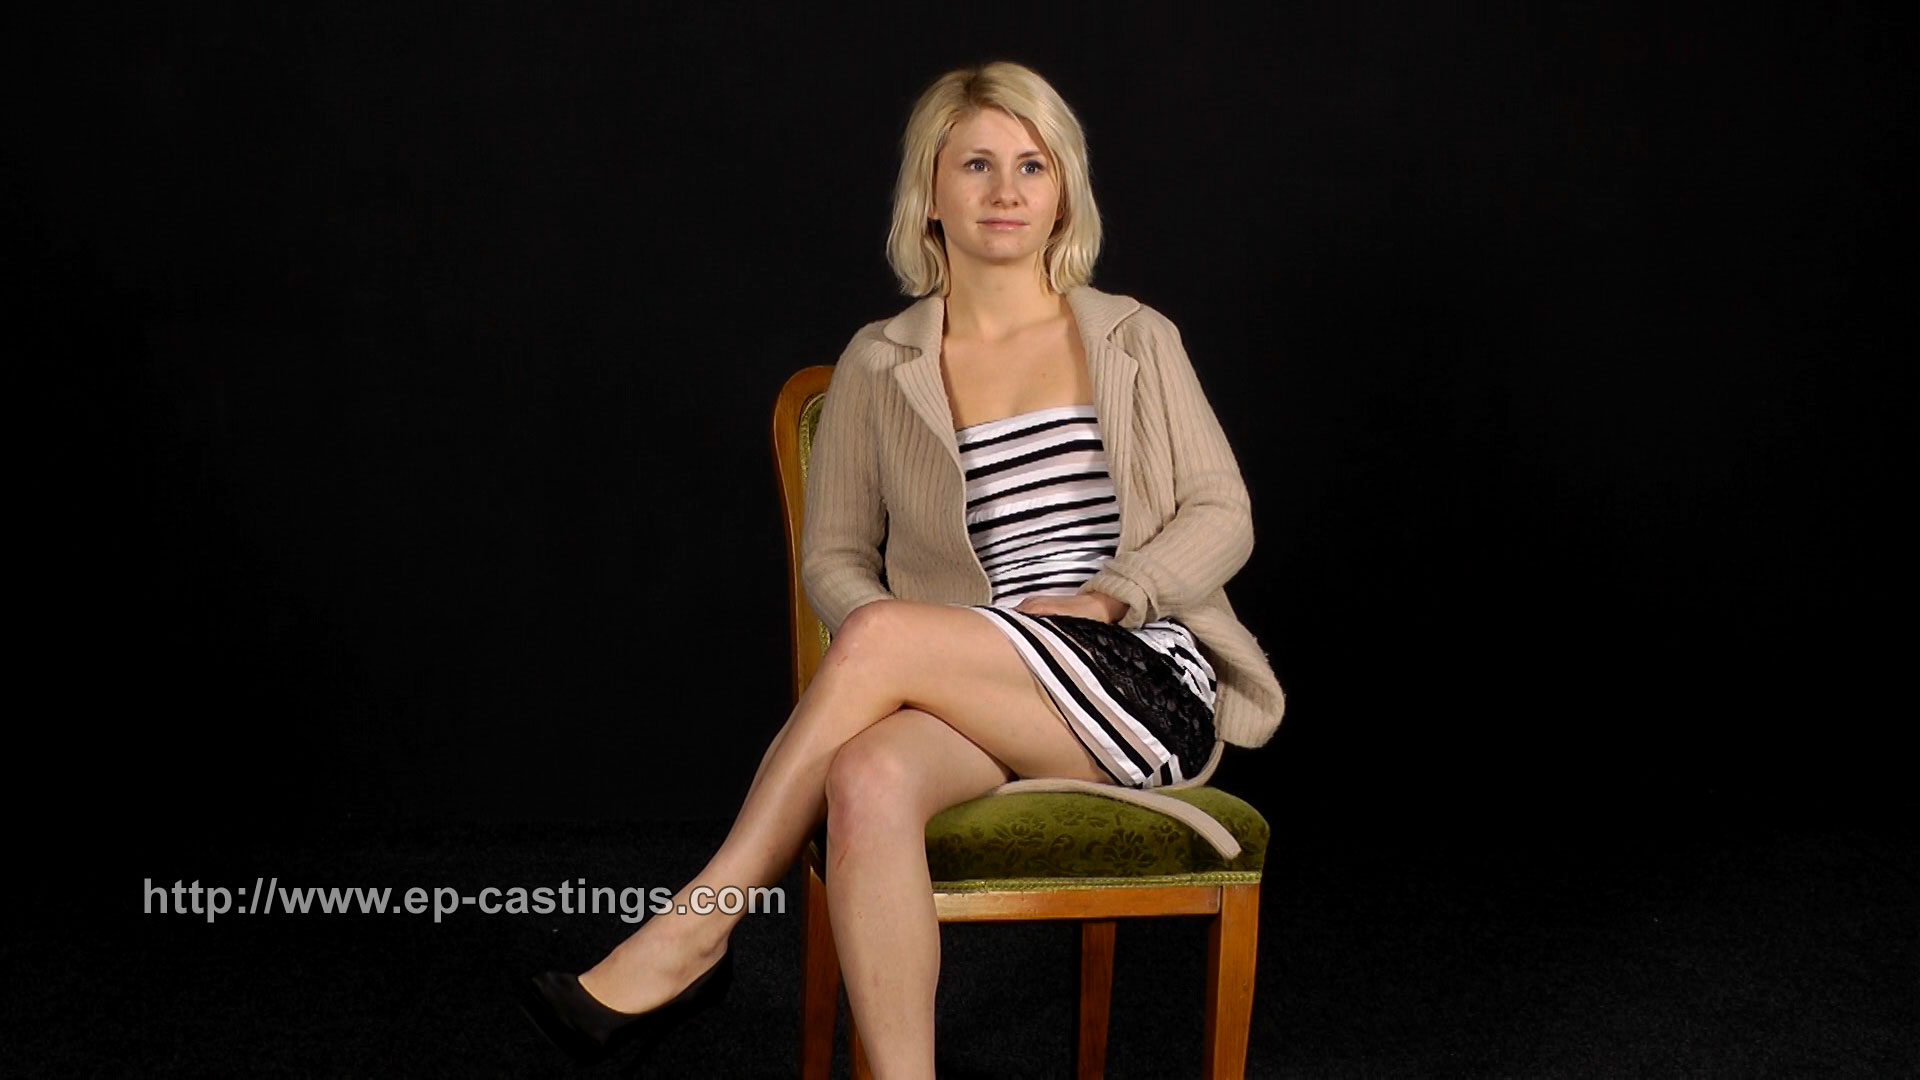 EP-Castings